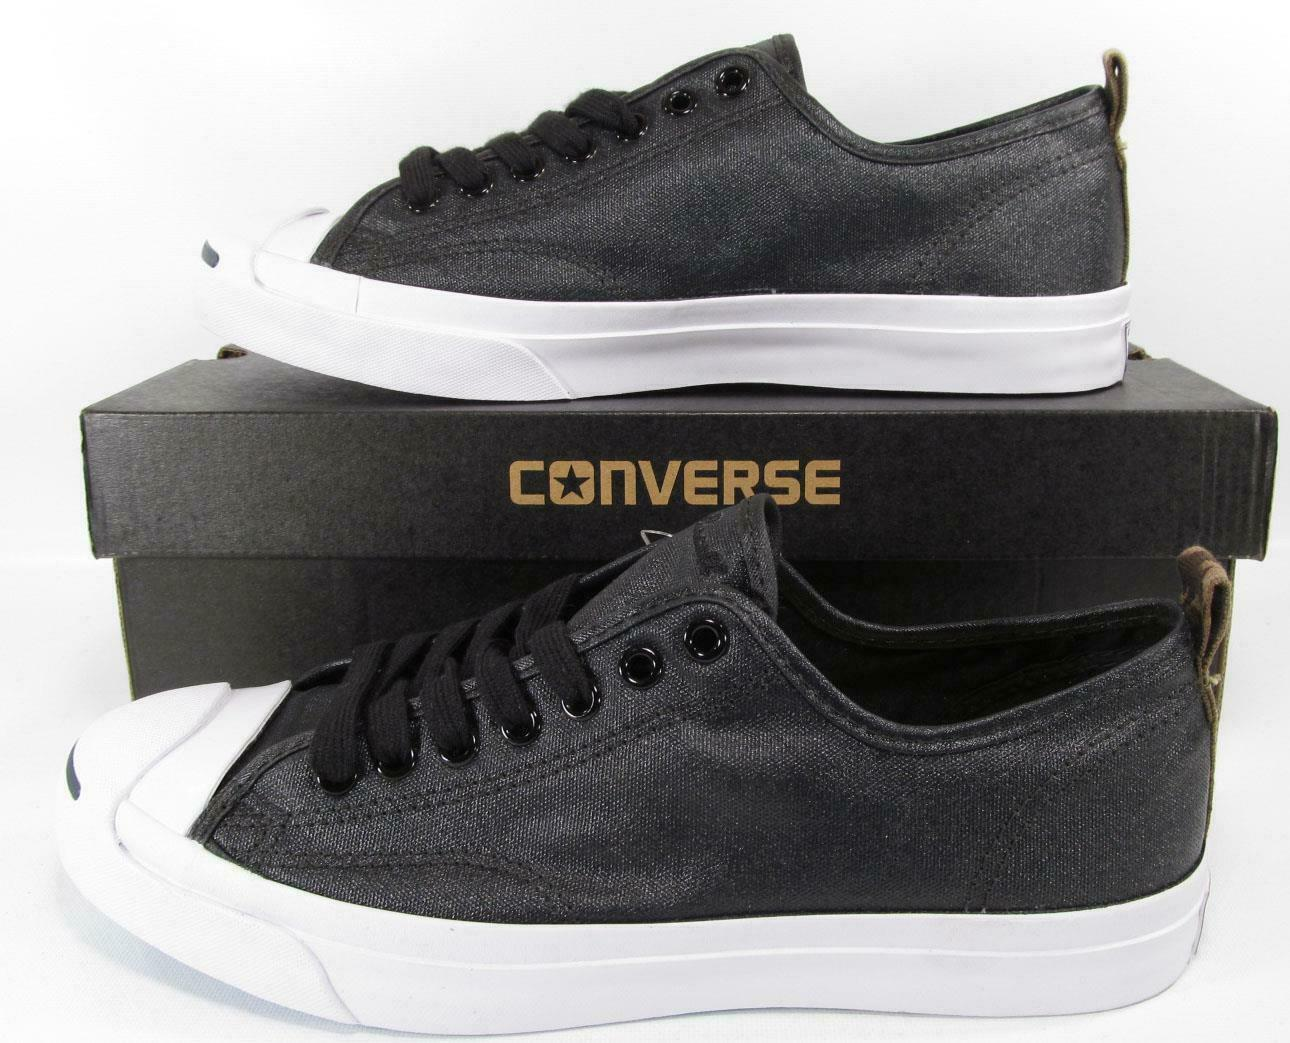 Primary image for Converse Jack Purcell JP JACK OX Nylon BLACK Lunarlon Sole 151483C (8.5 MENS)